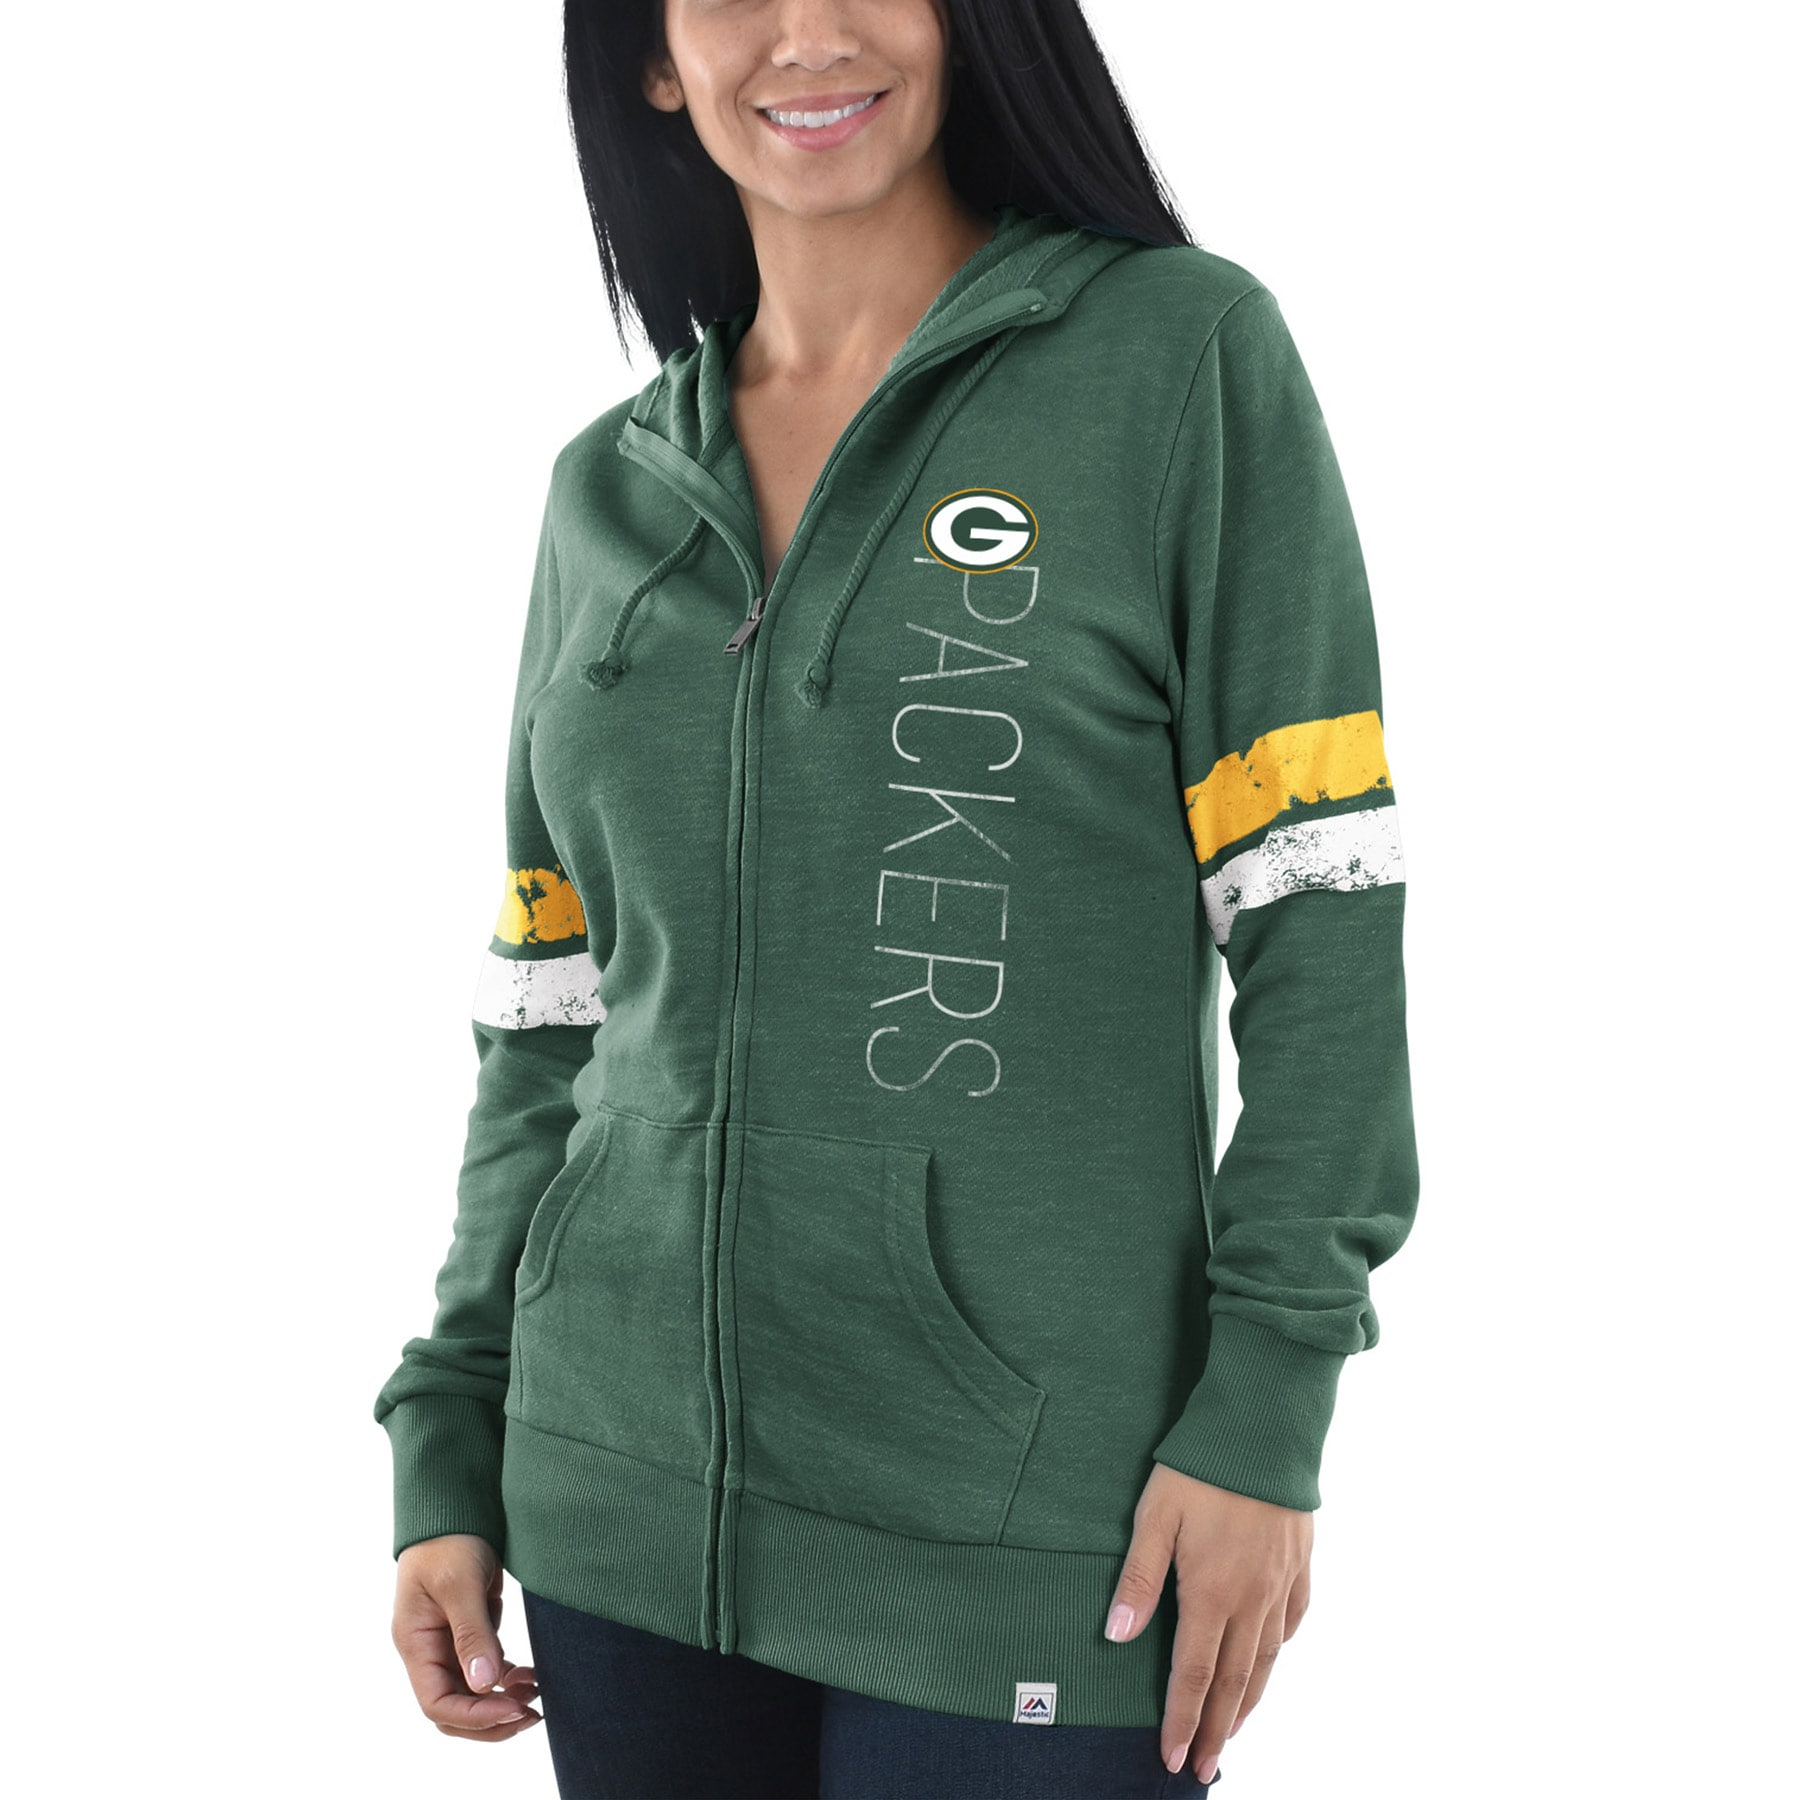 Green Bay Packers Majestic Women's Athletic Tradition Full-Zip Hoodie - Heathered Green